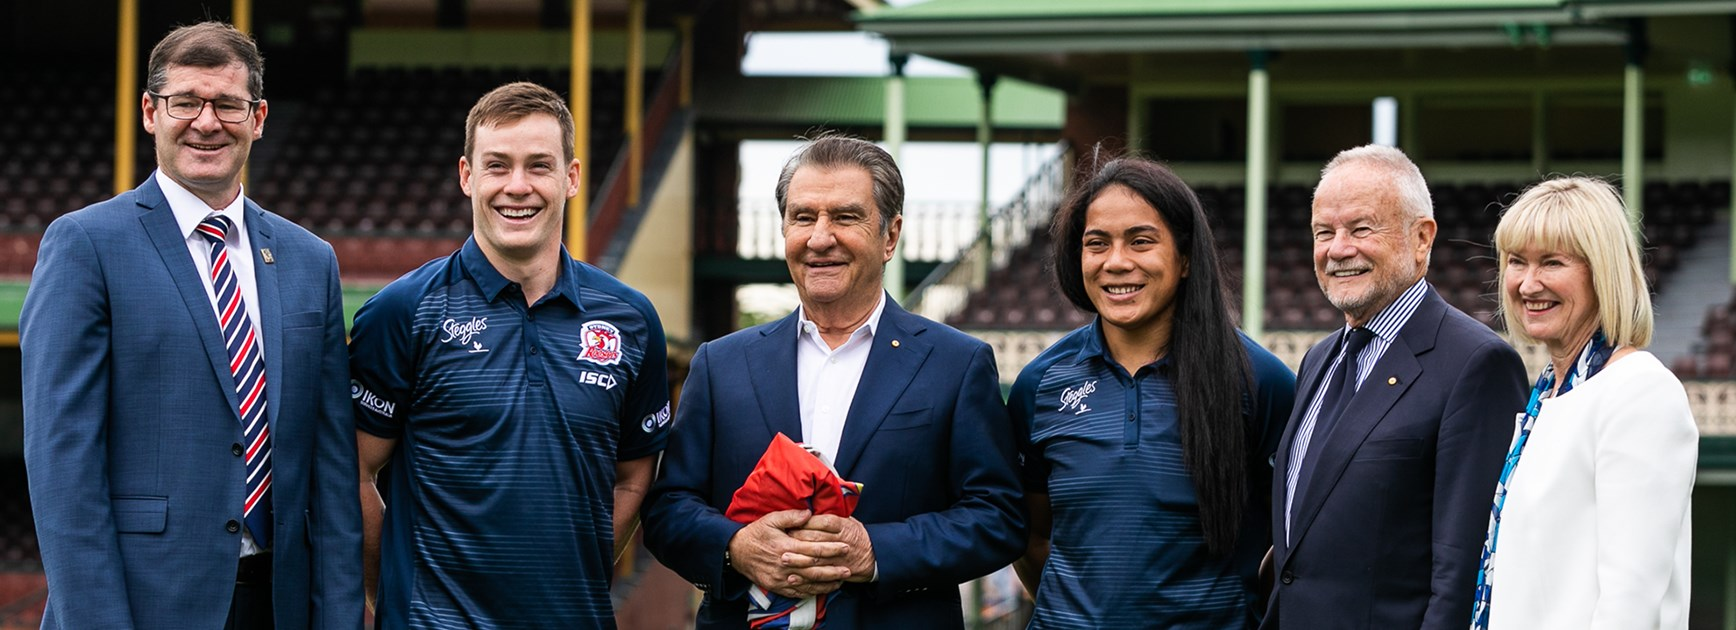 SCG Trust & Roosters Agree To 25-Year Partnership